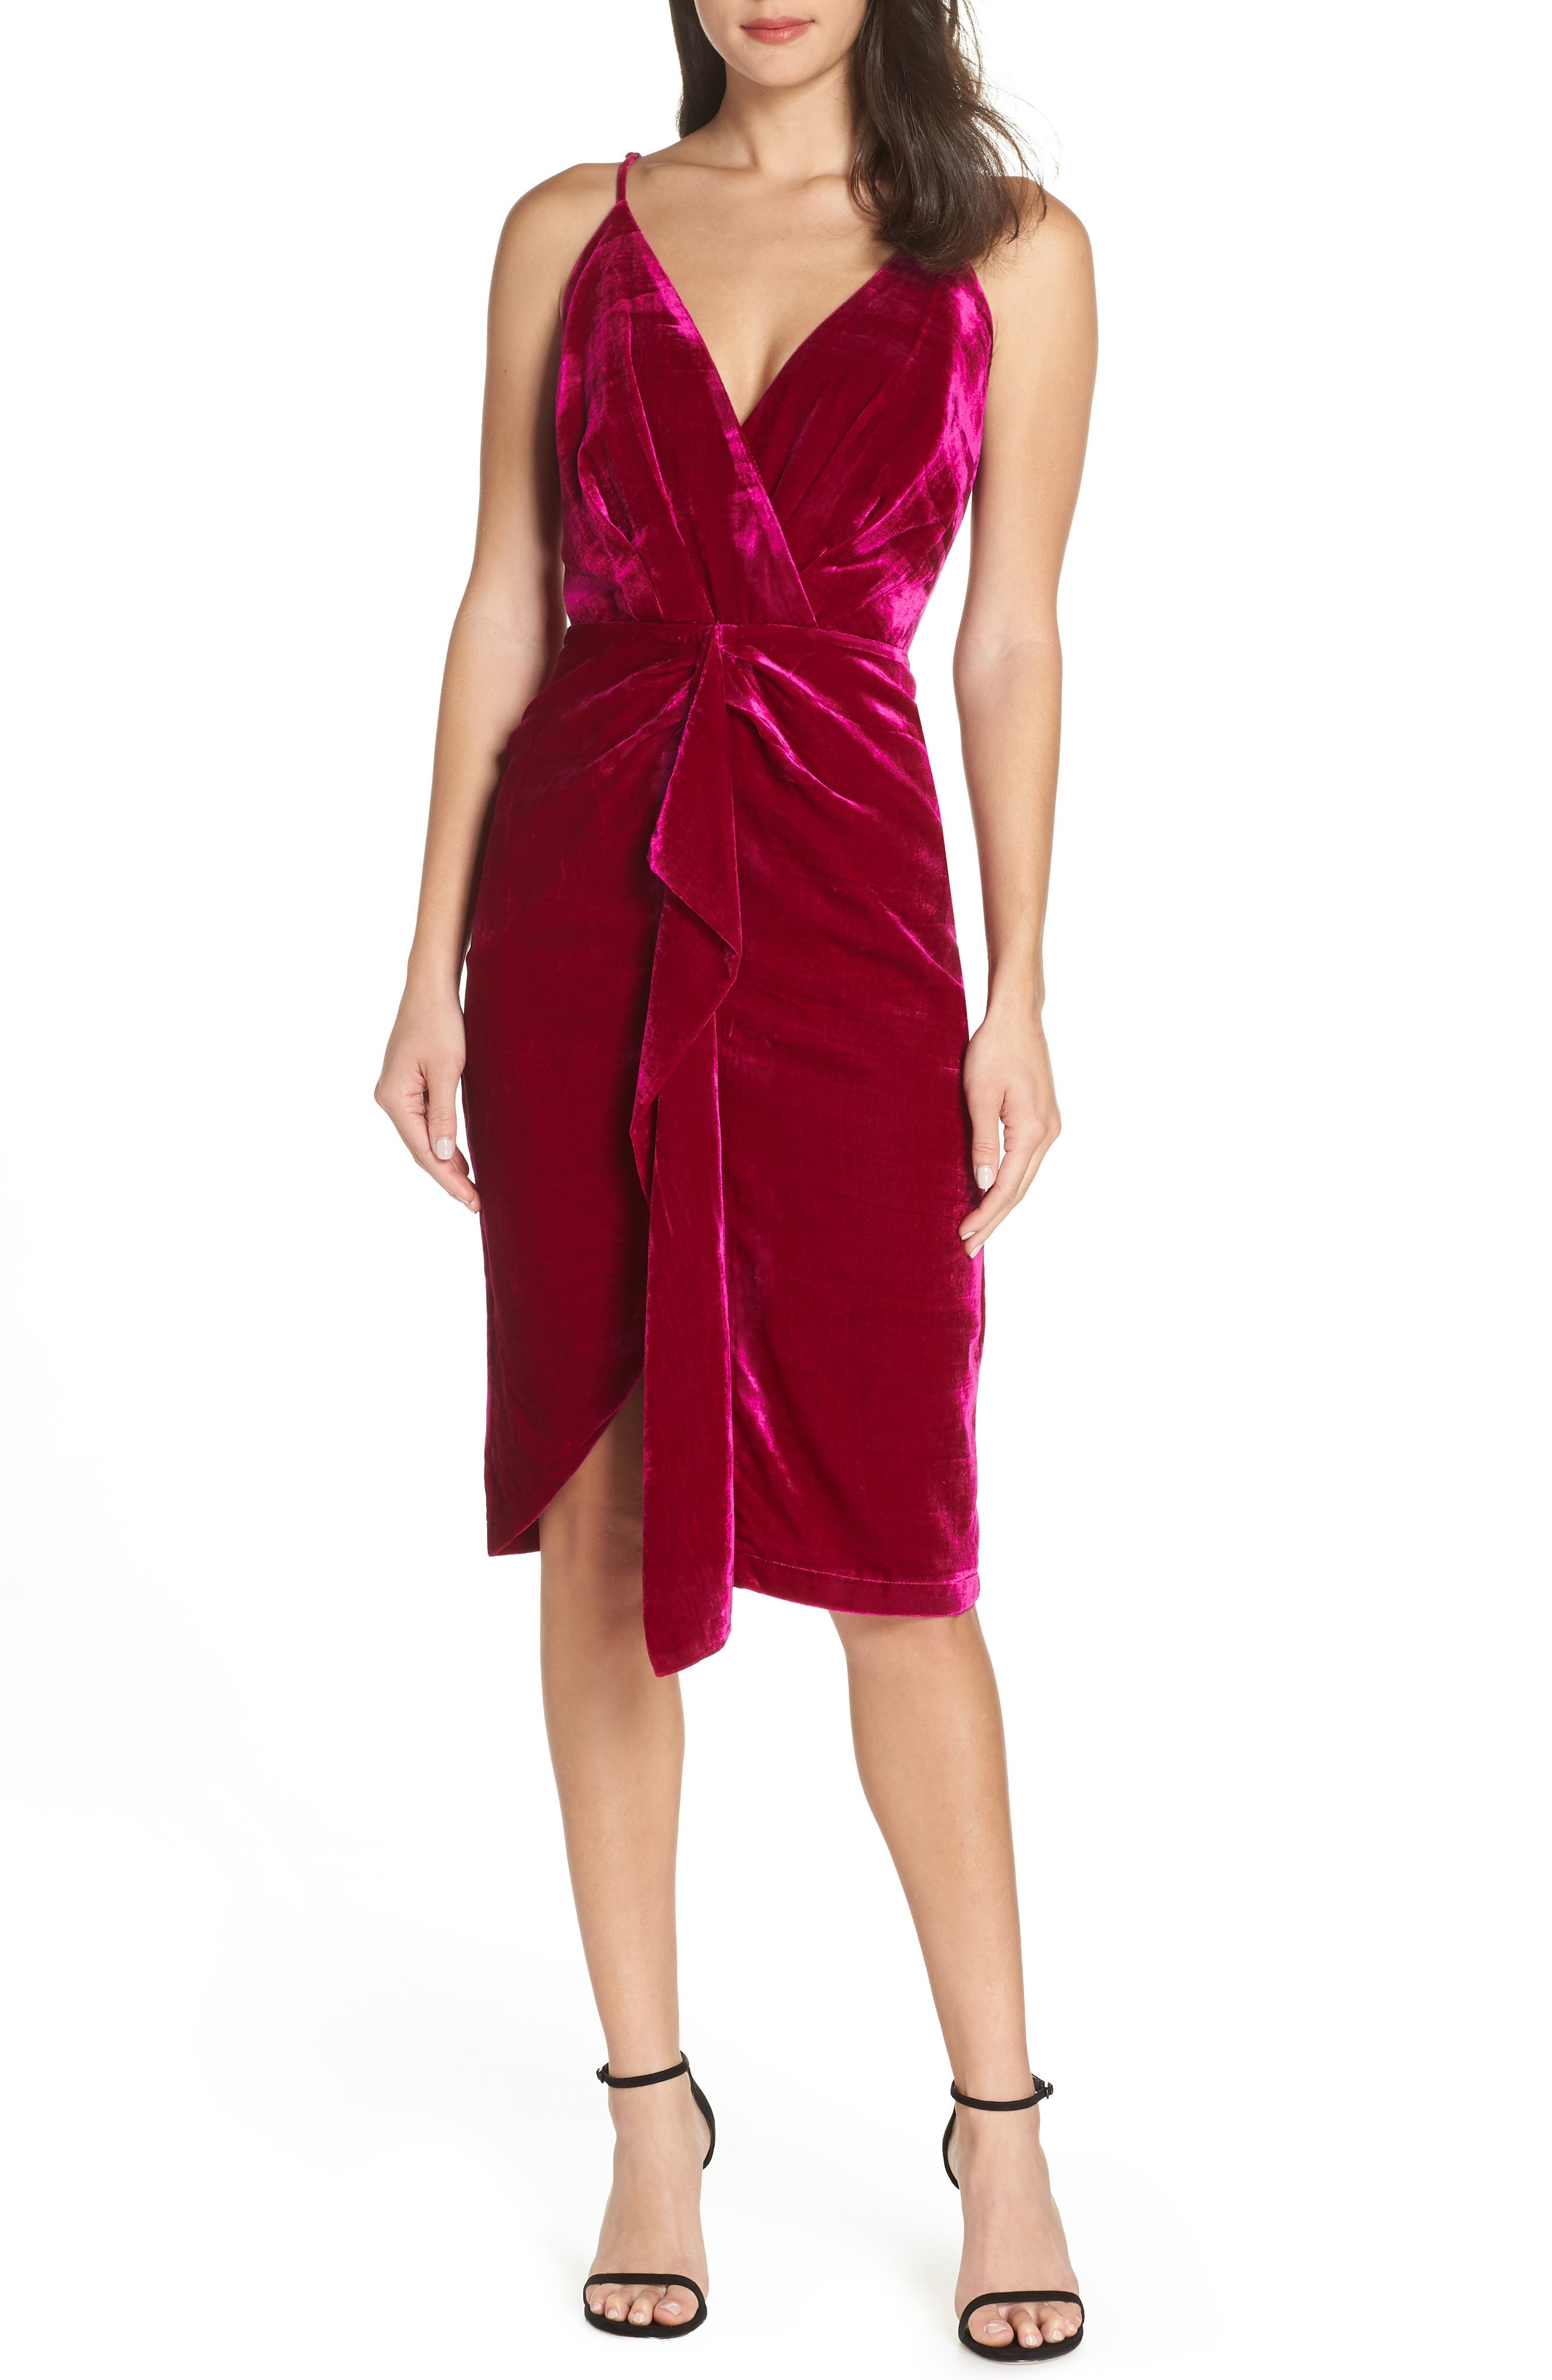 HARLYN Drape Midi Dress in Deep Magenta